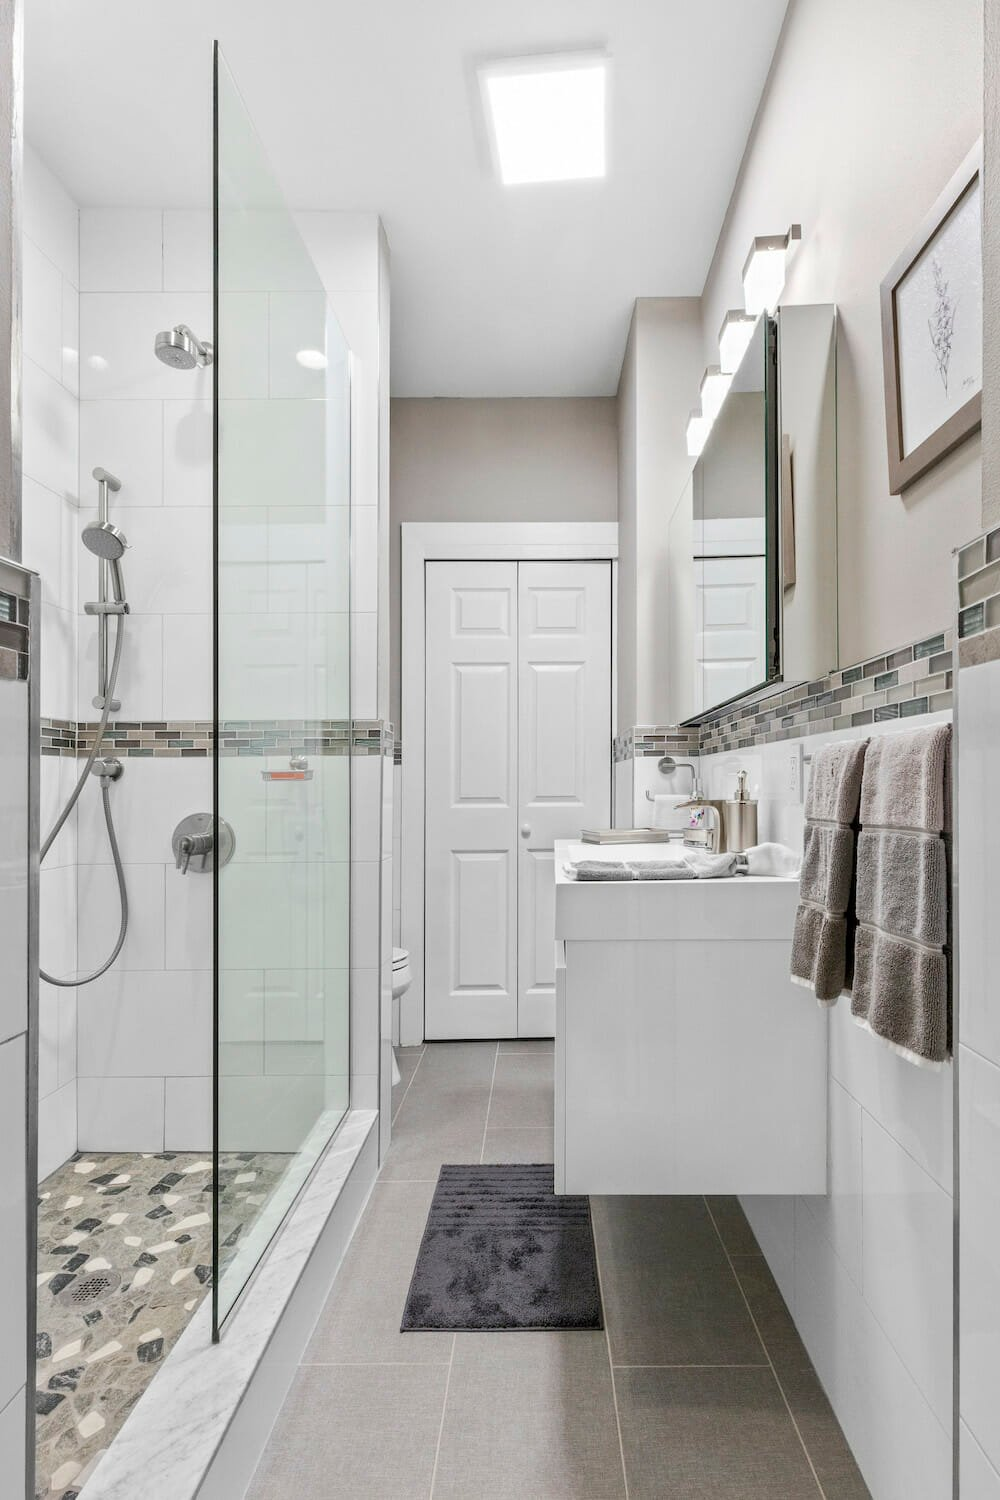 The new walk-in shower lights up the space and prioritizes safety